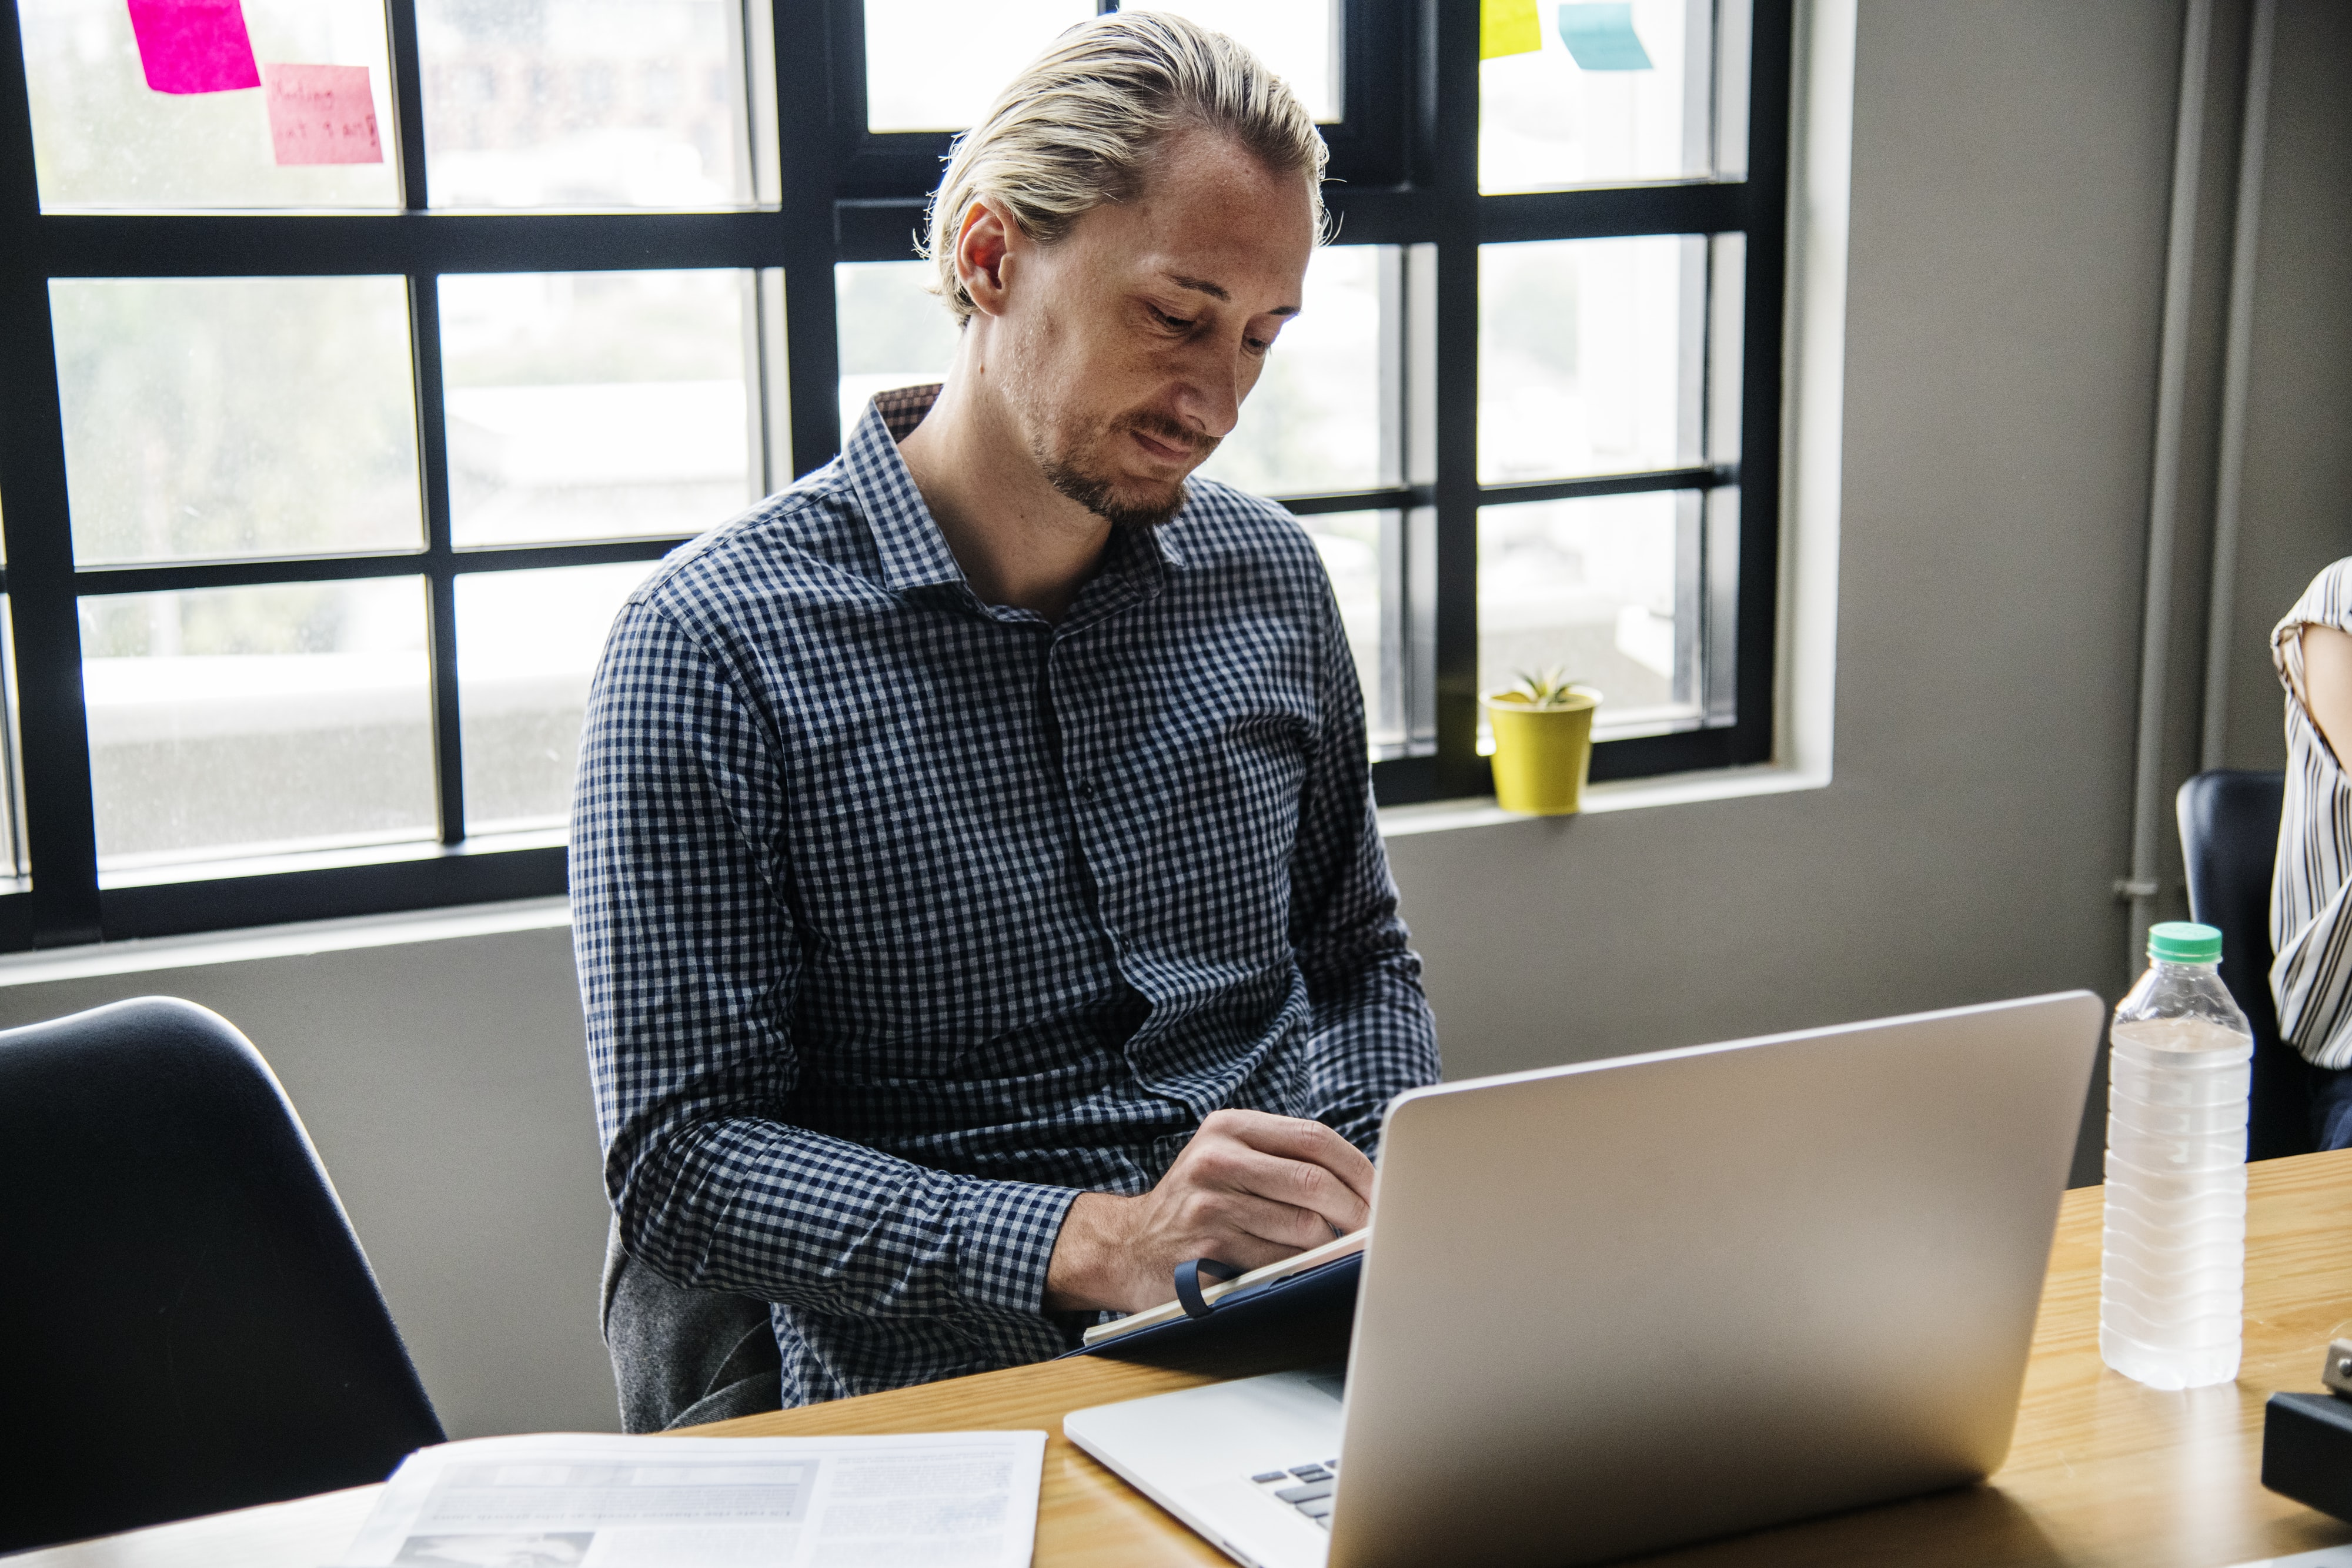 man in blue dress shirt using MacBook Pro on table